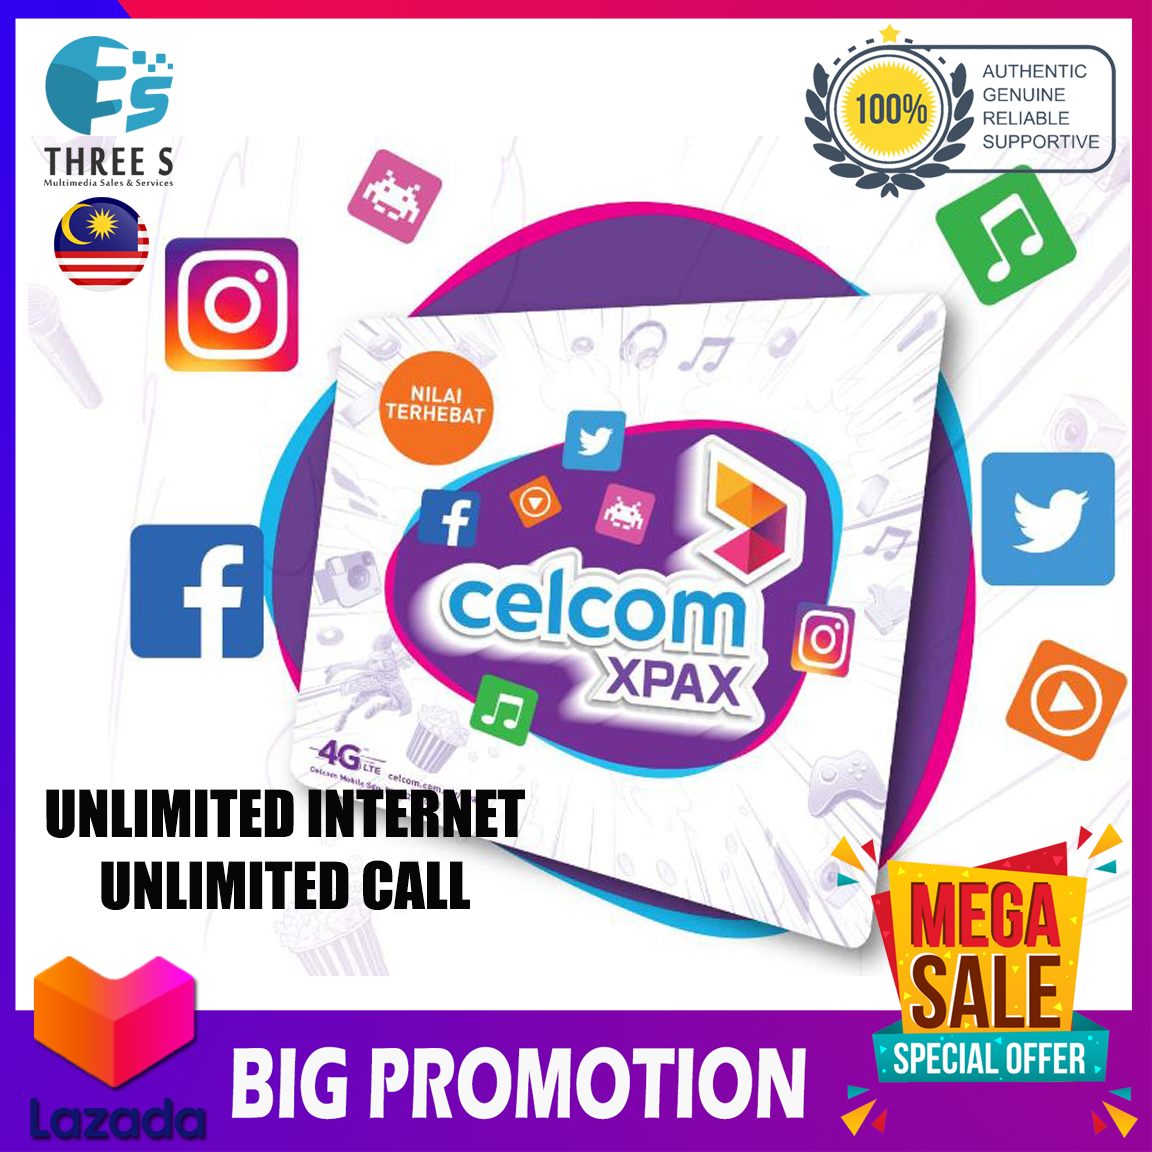 CELCOM UNLIMITED INTERNET AND UNLIMITED CALL